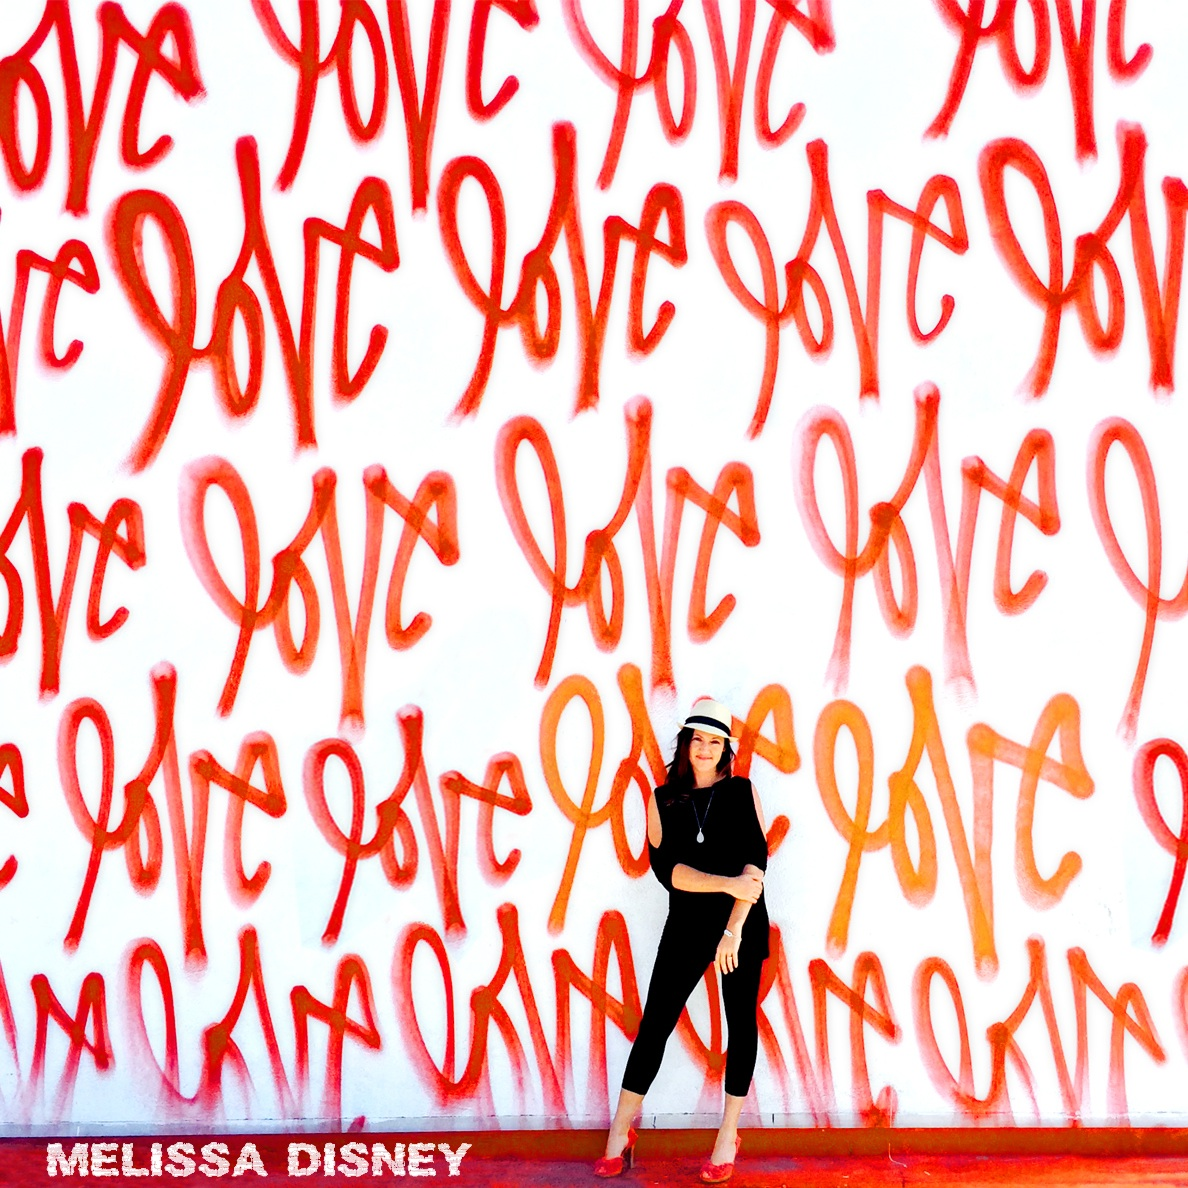 LOVE - Cover Art for new album -MELISSA DISNEY.jpg